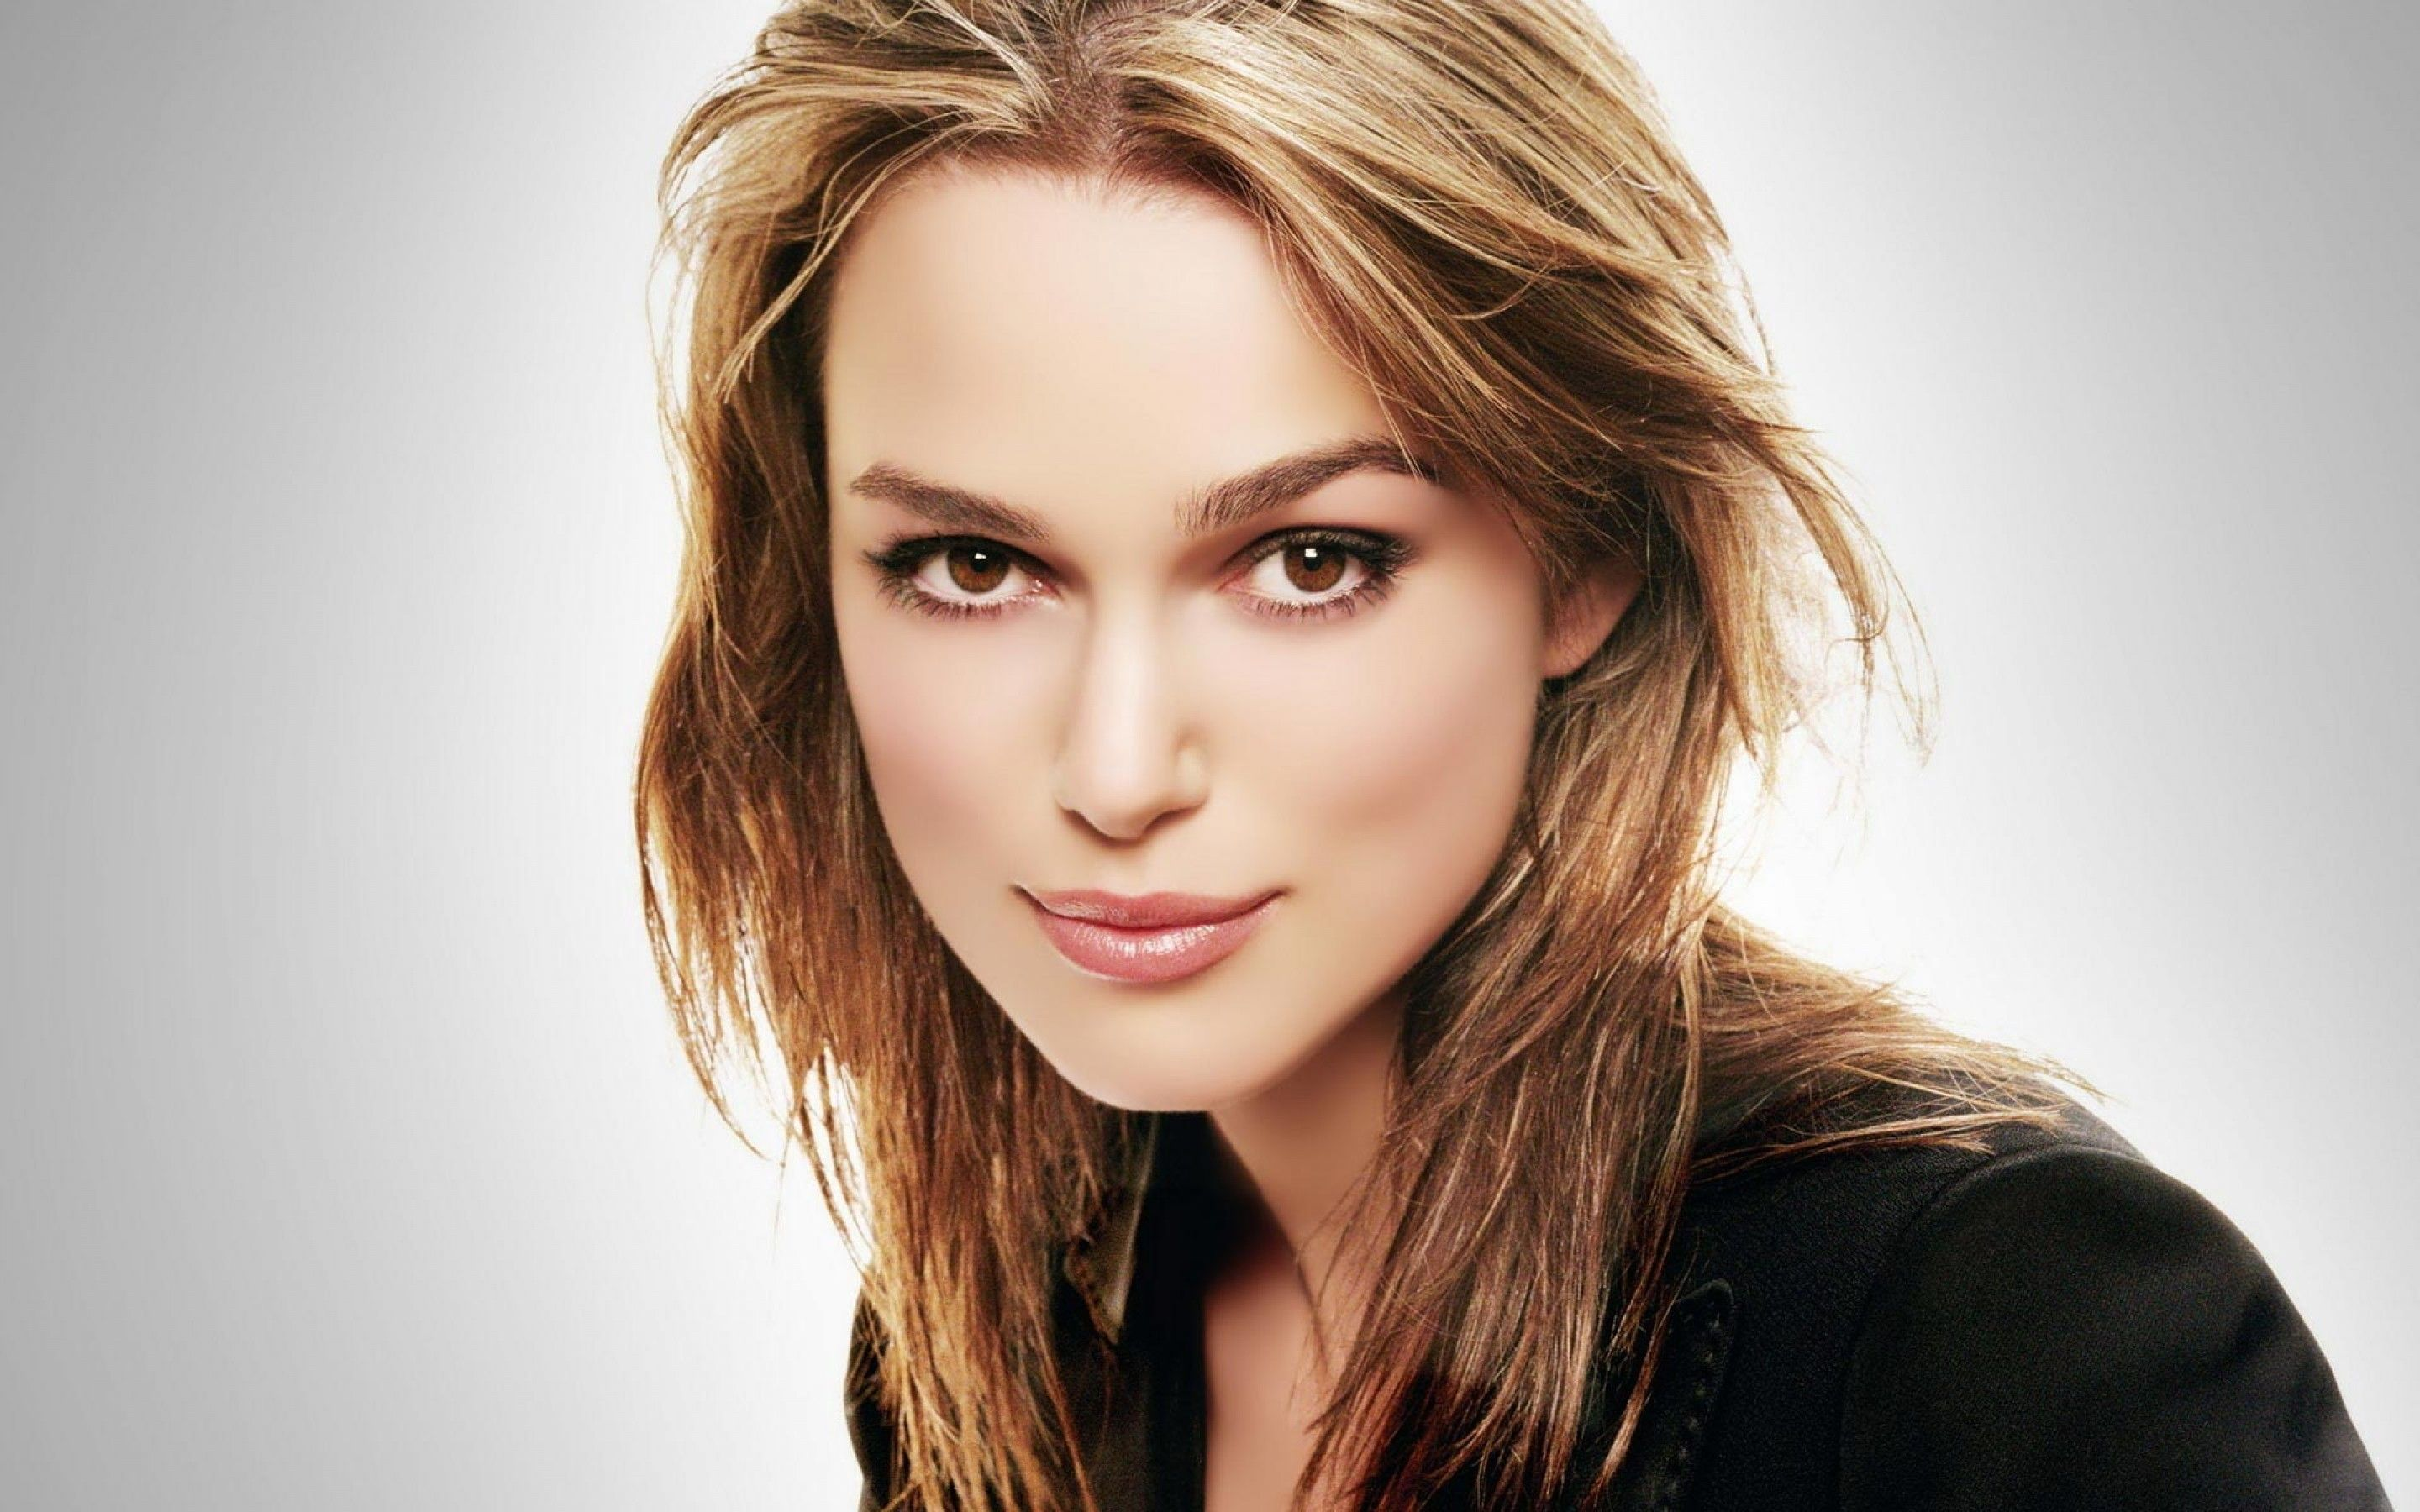 Keira Knightley earned a  million dollar salary, leaving the net worth at 50 million in 2017